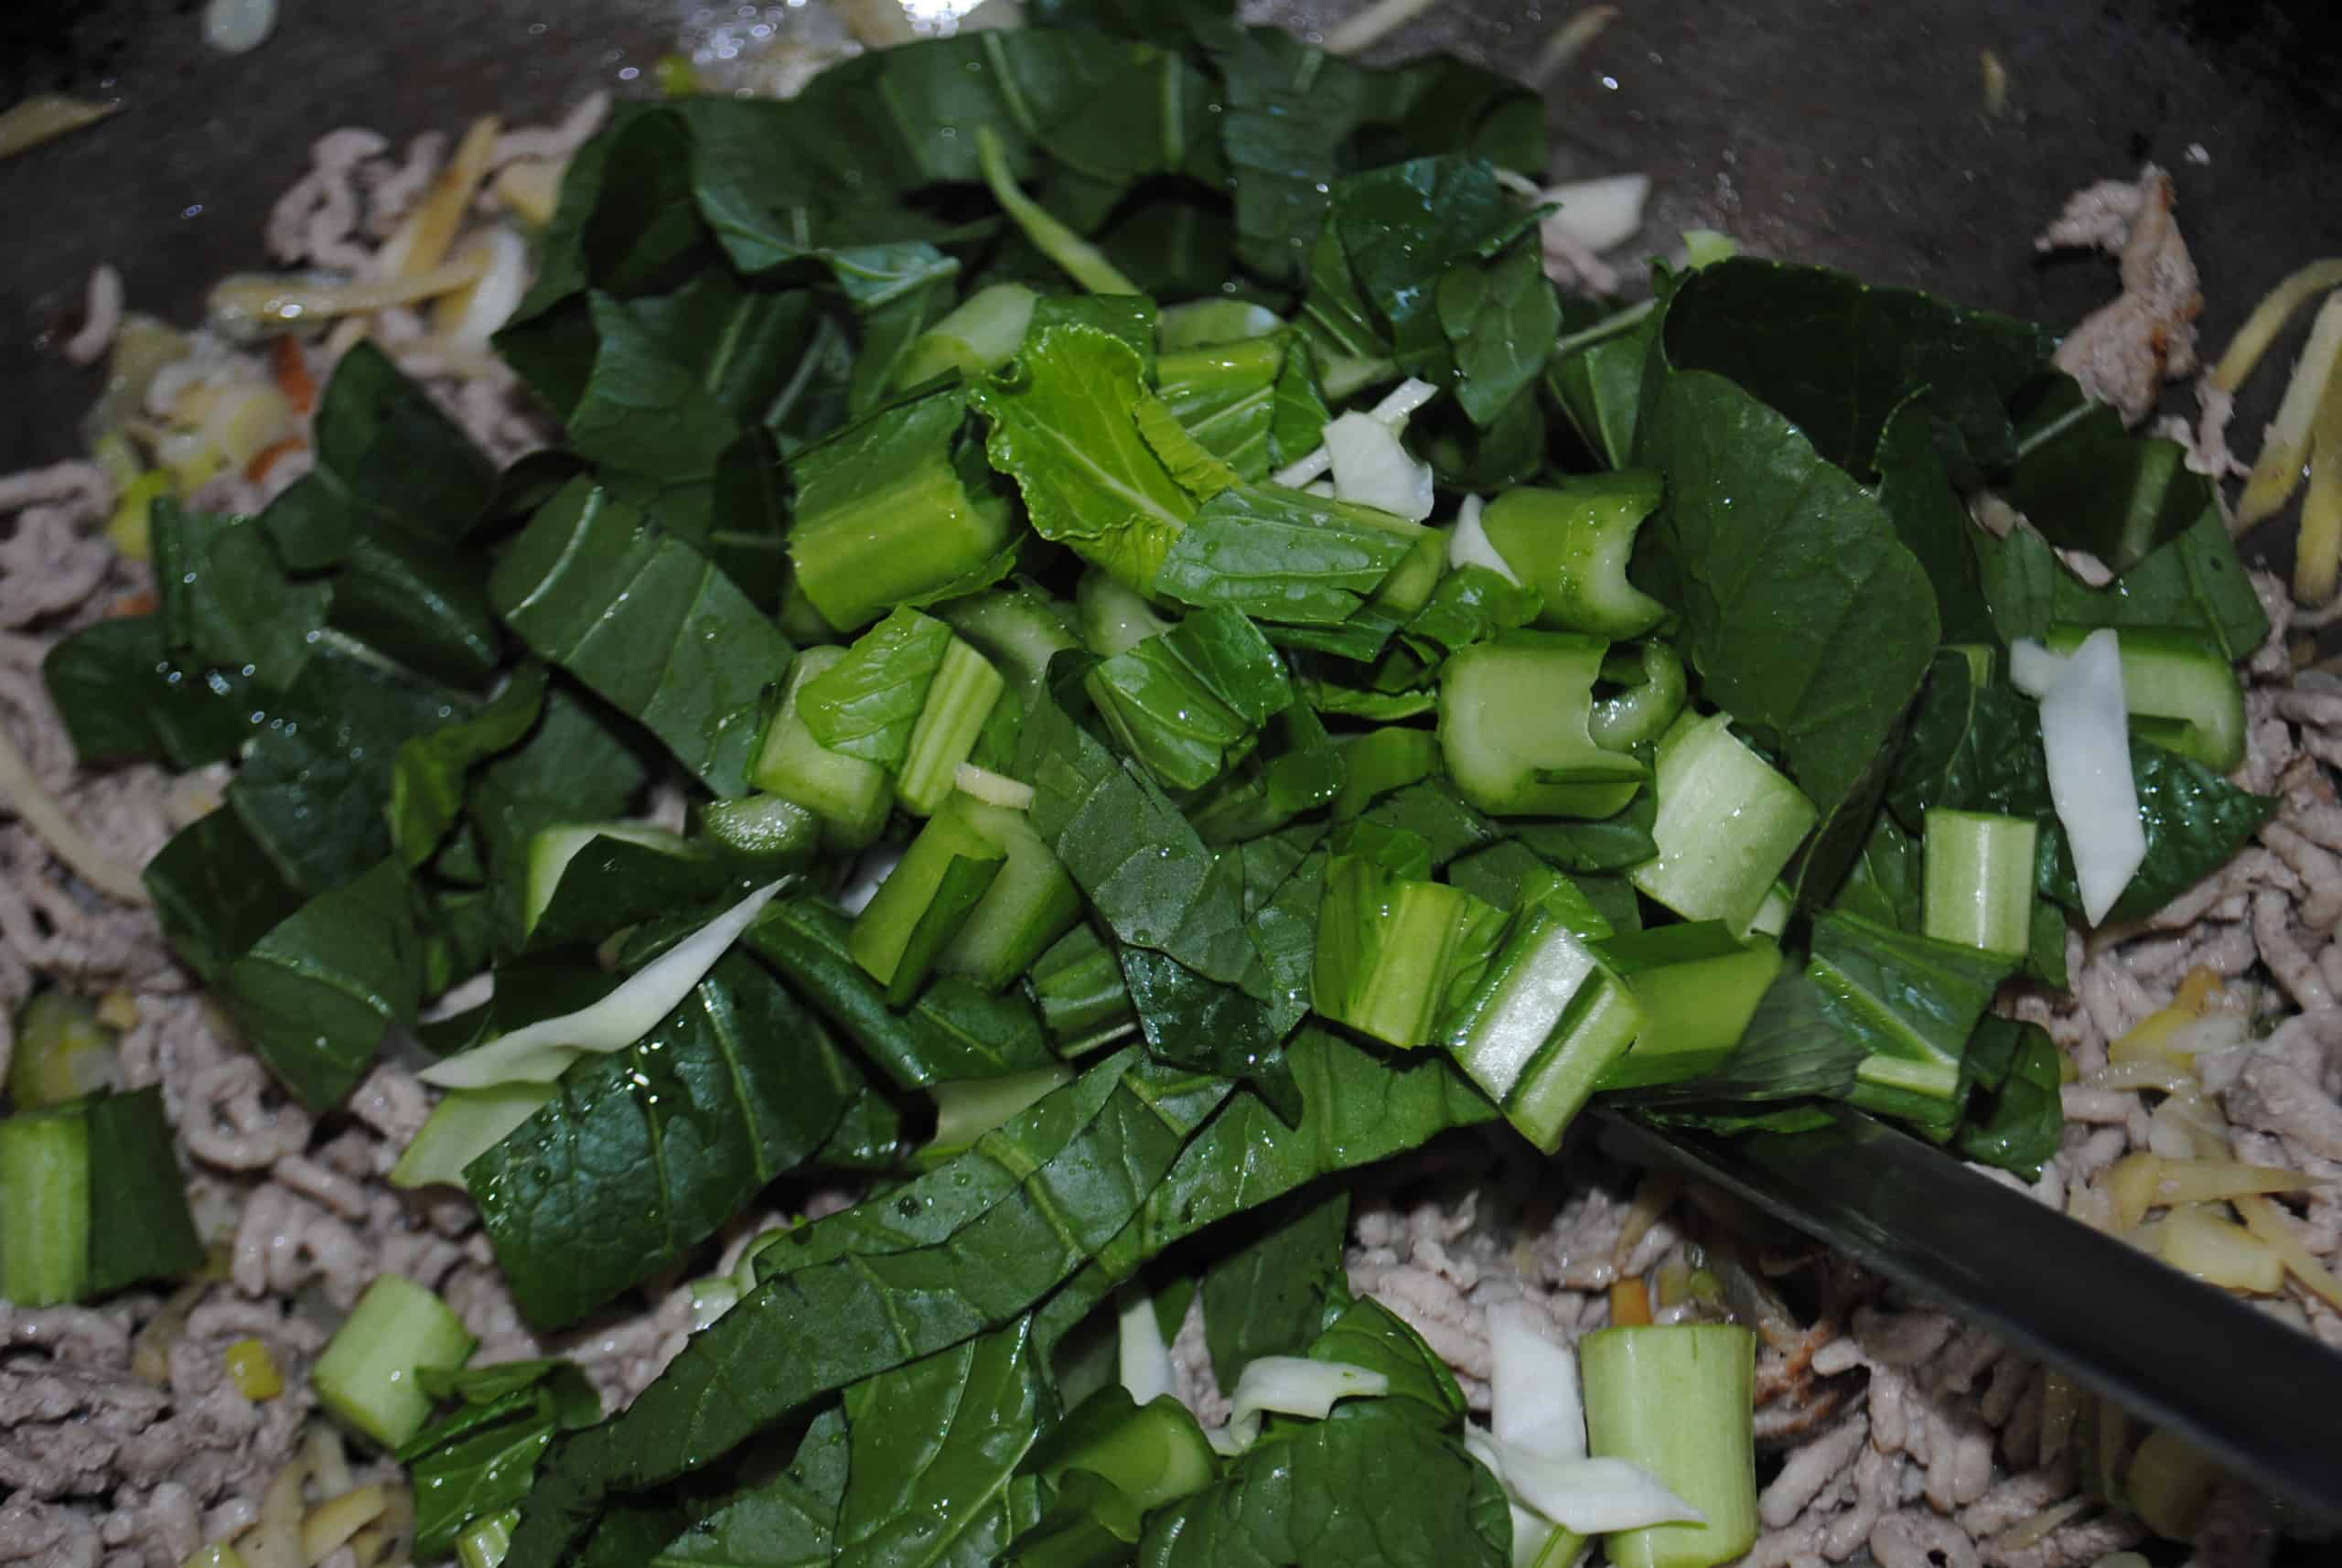 choy sum being added to pork and aromatics in wok for stir fried pork and sesame udon noodles